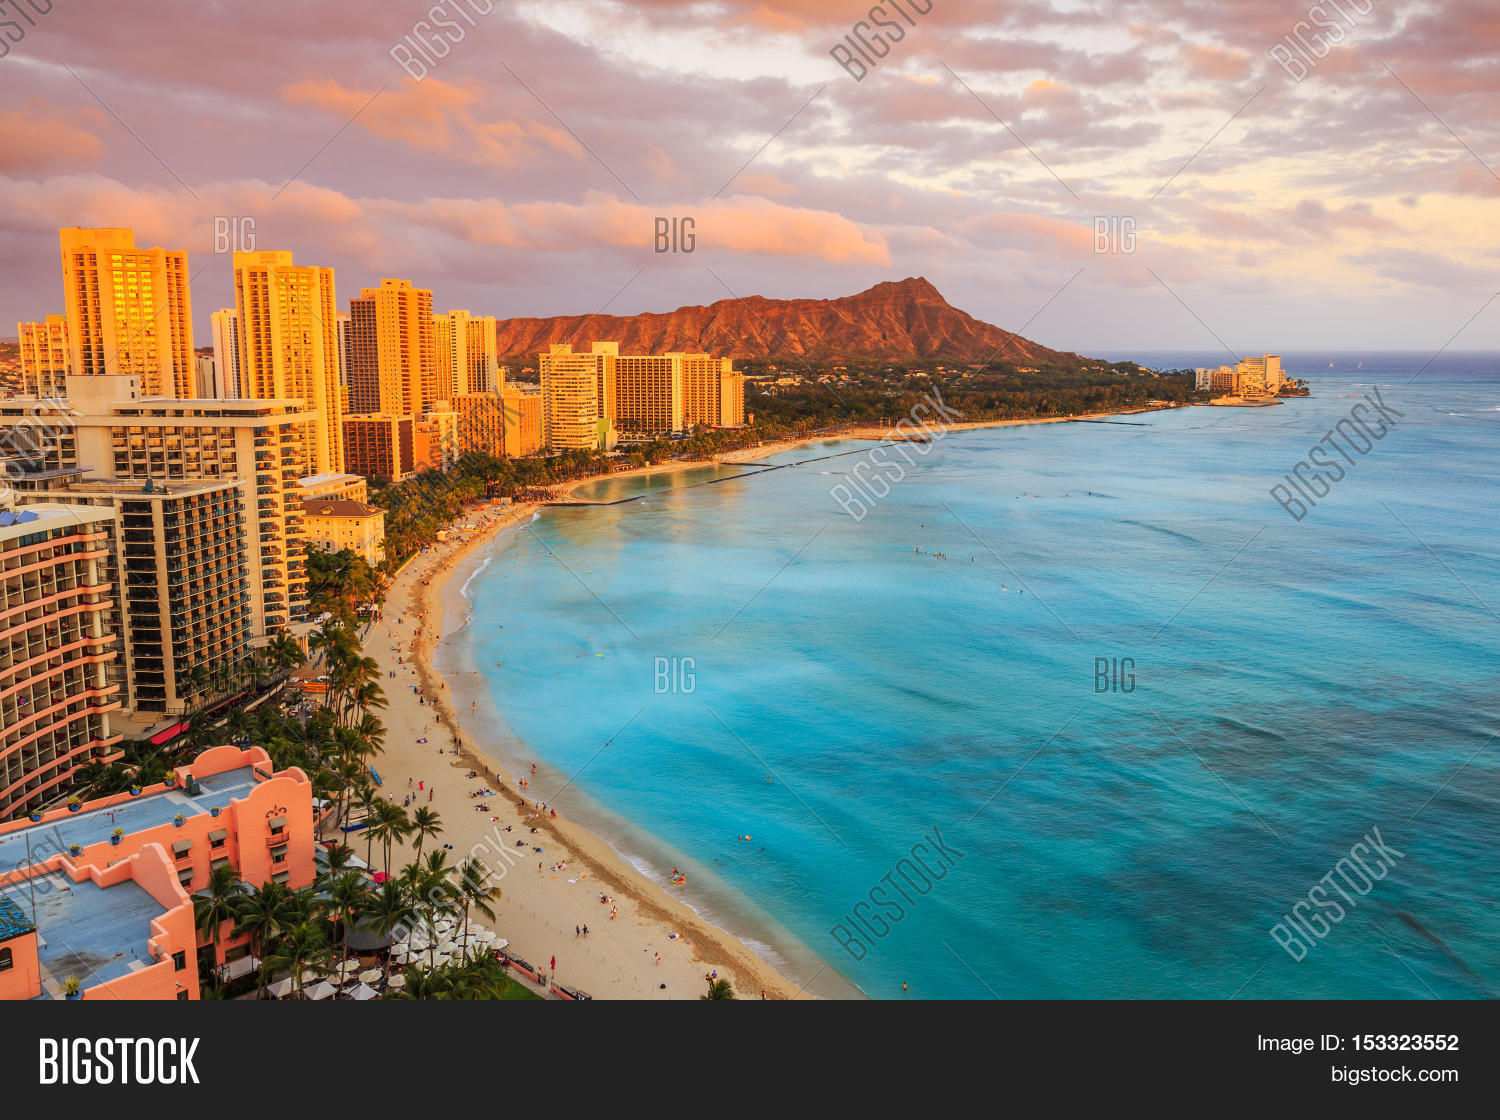 Honolulu Hawaii Image Photo Free Trial Bigstock